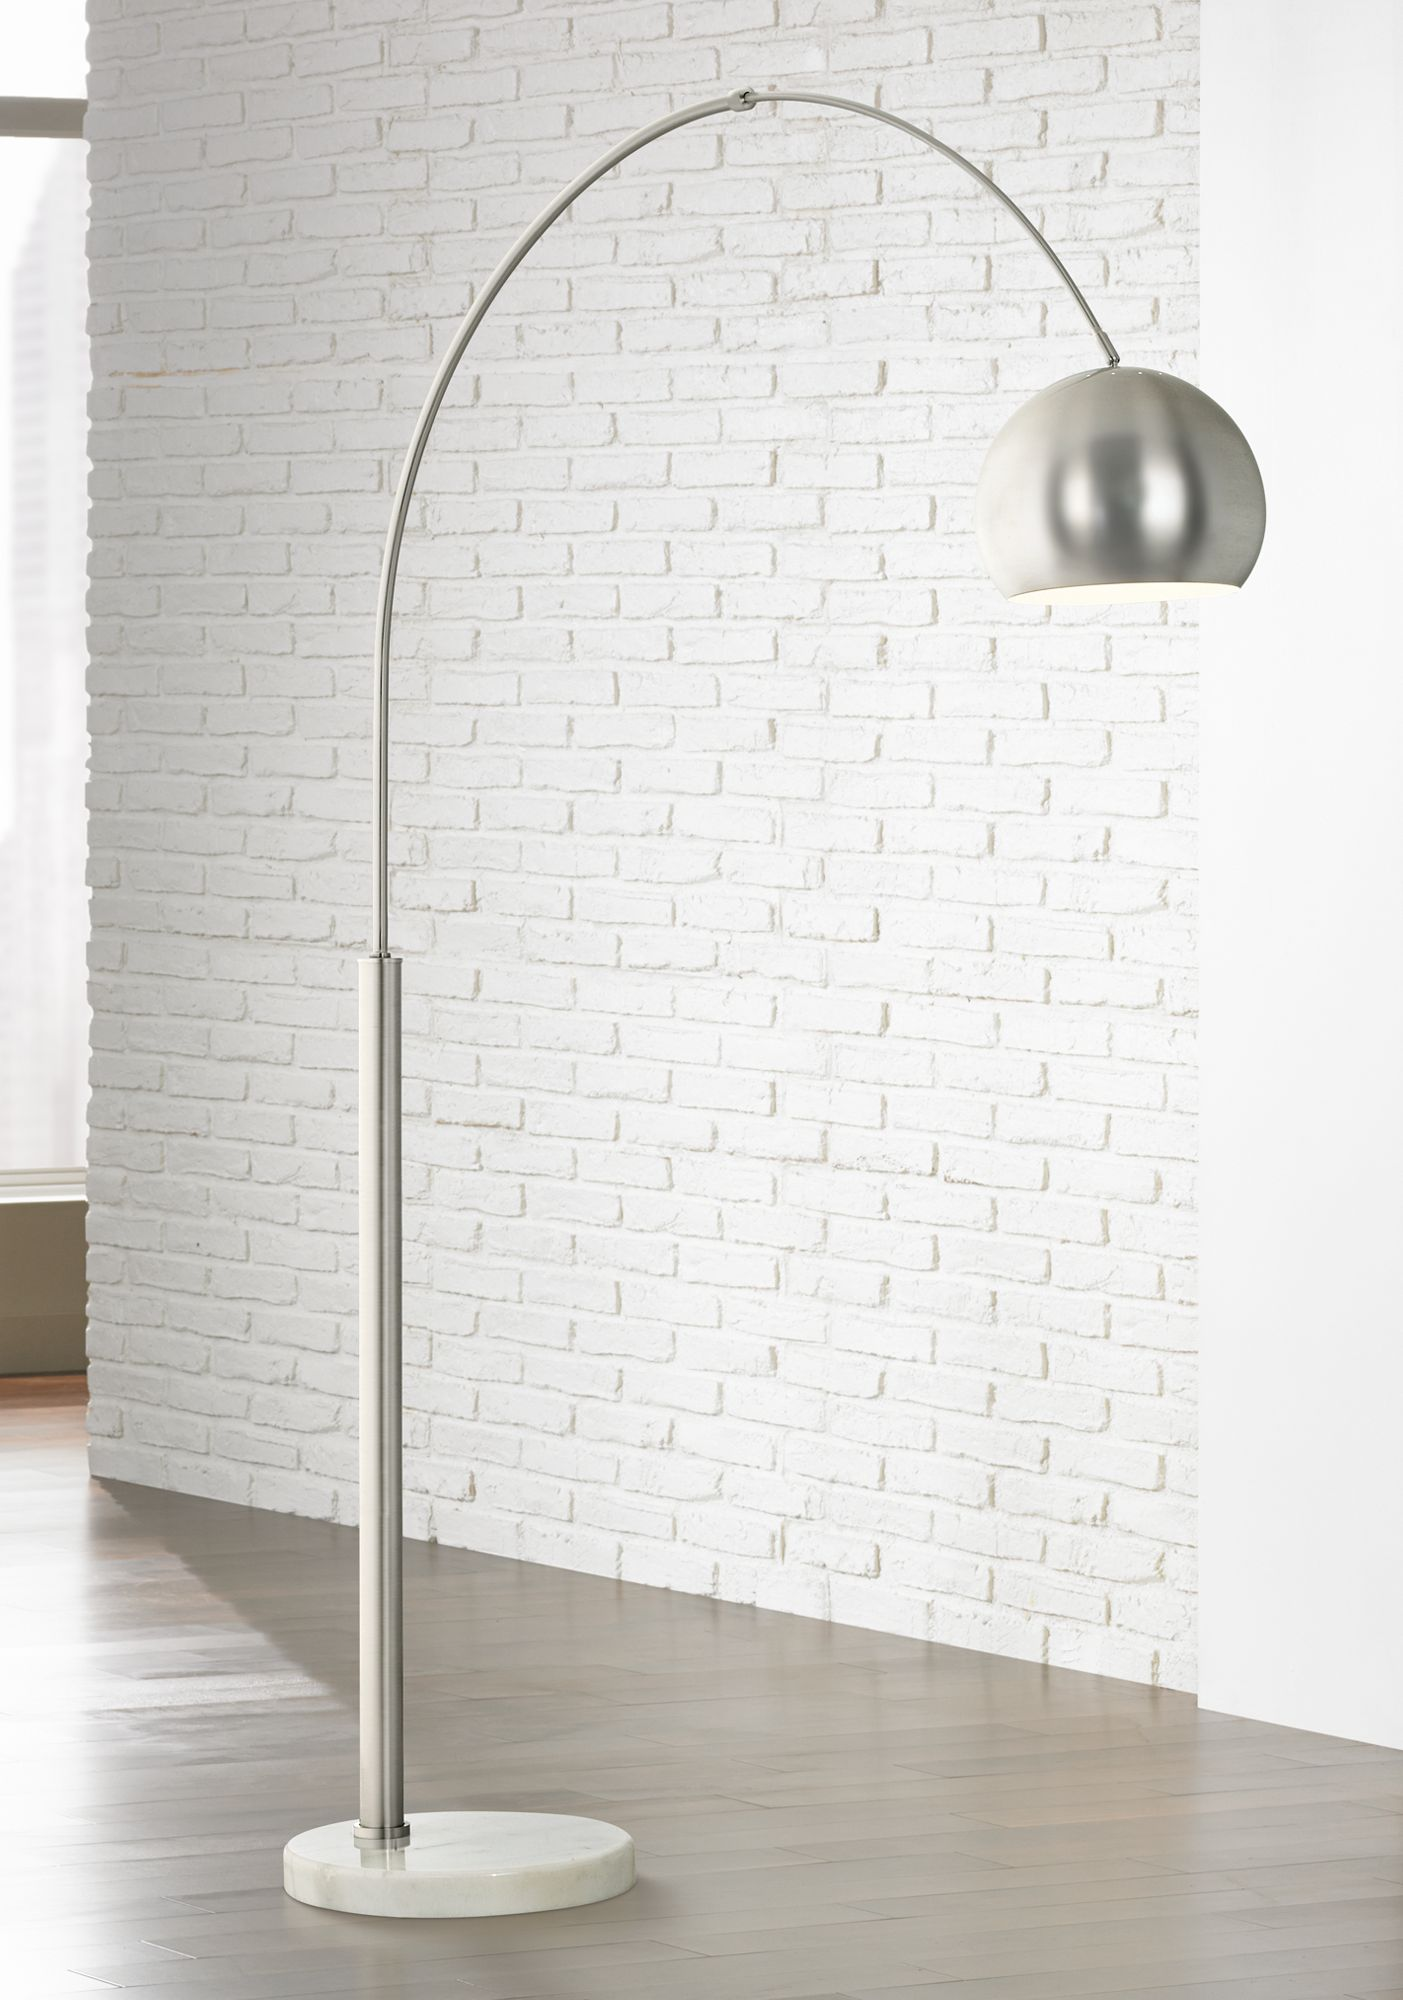 basque steel and brushed nickel arc floor lamp - Arc Floor Lamps